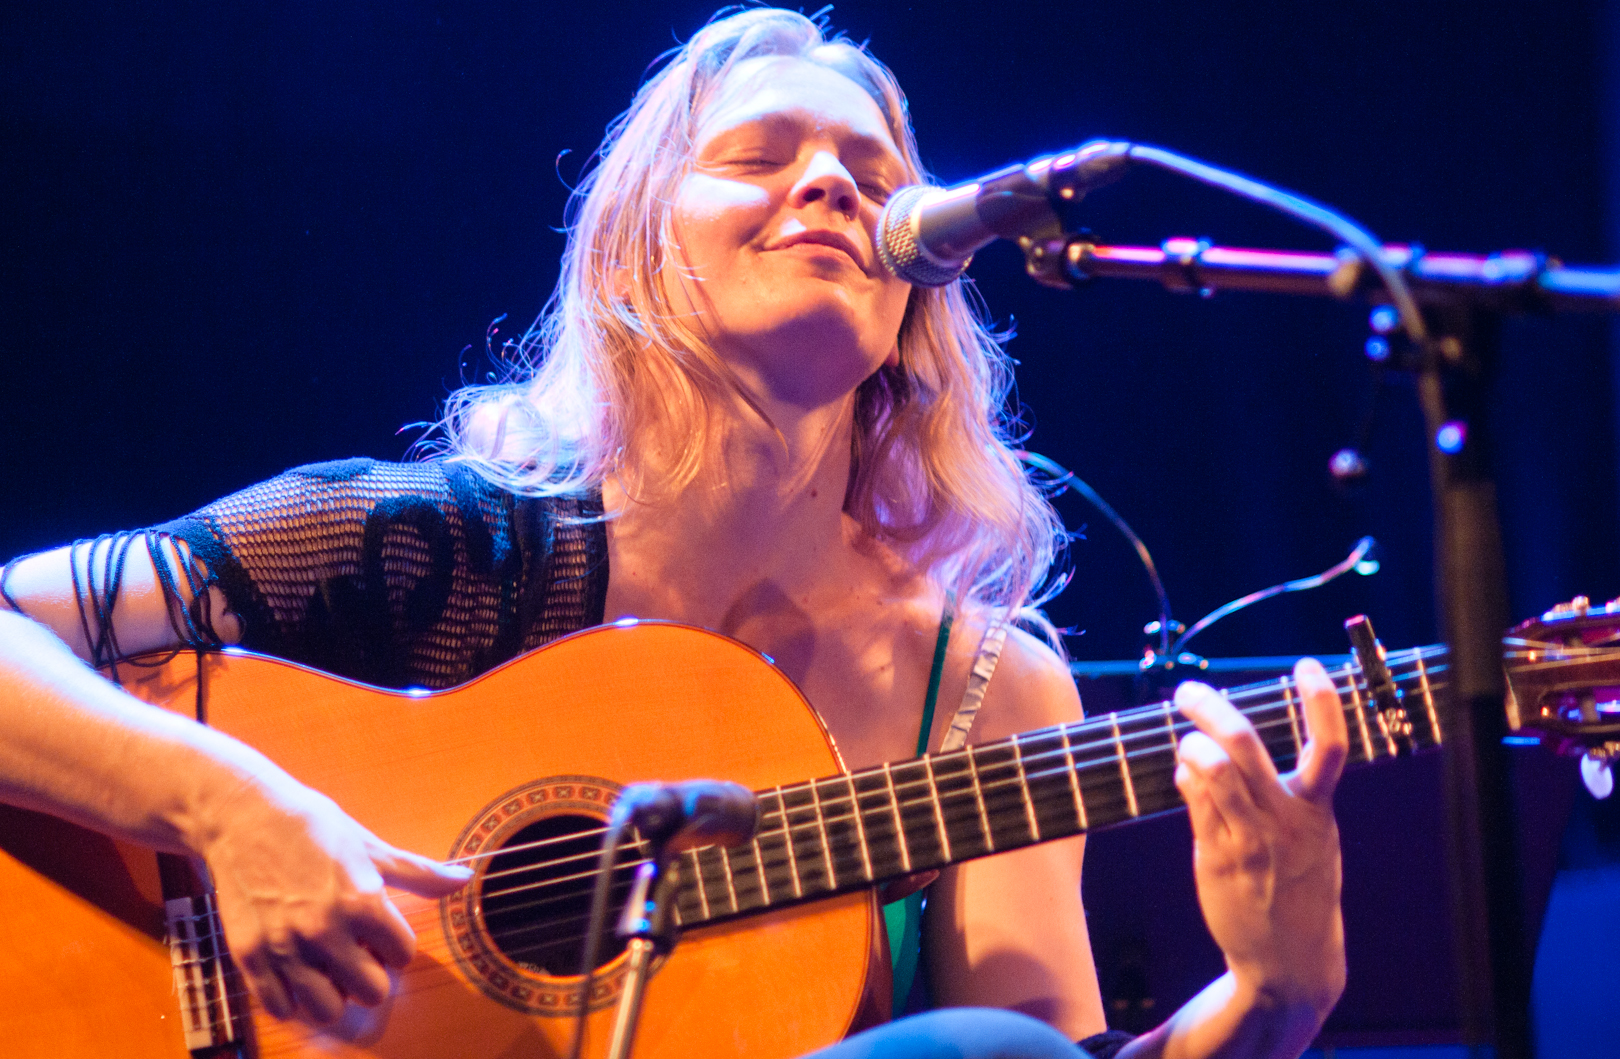 Bettina Flater at the Oslo Jazz Festival Jam Sessions